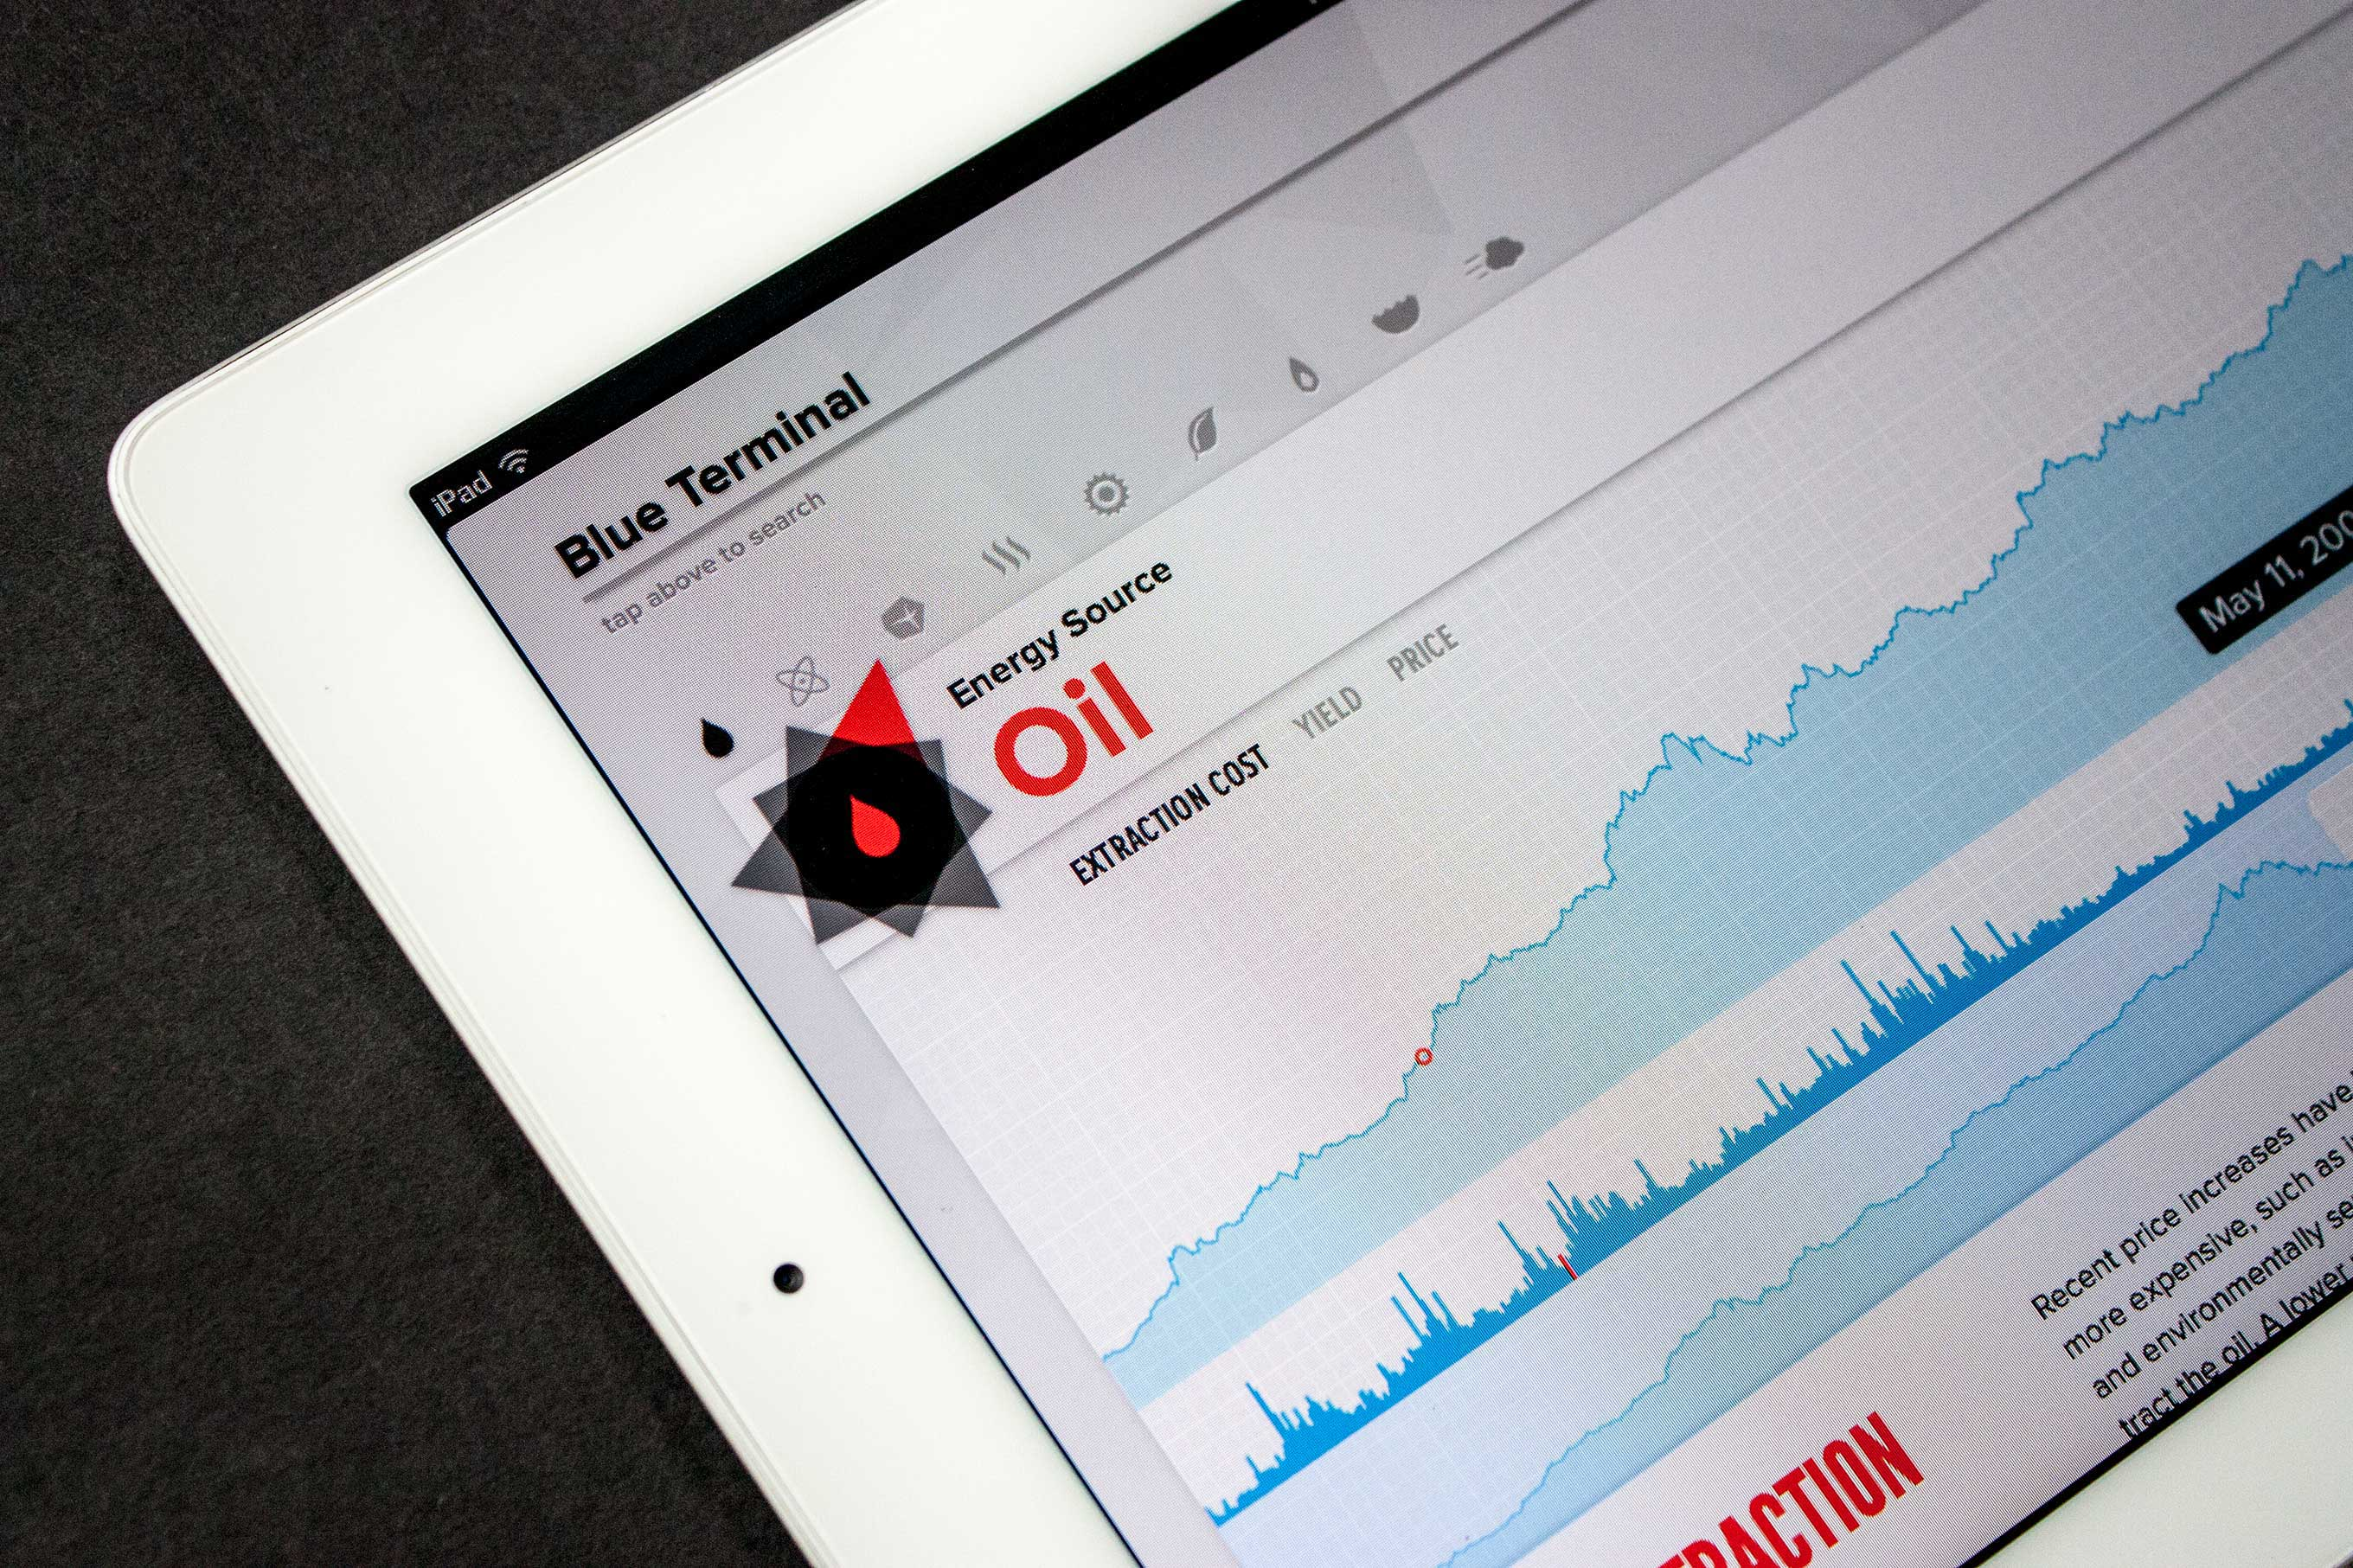 Blue Terminal data visualization interface focused on oil — by Yagnyuk.